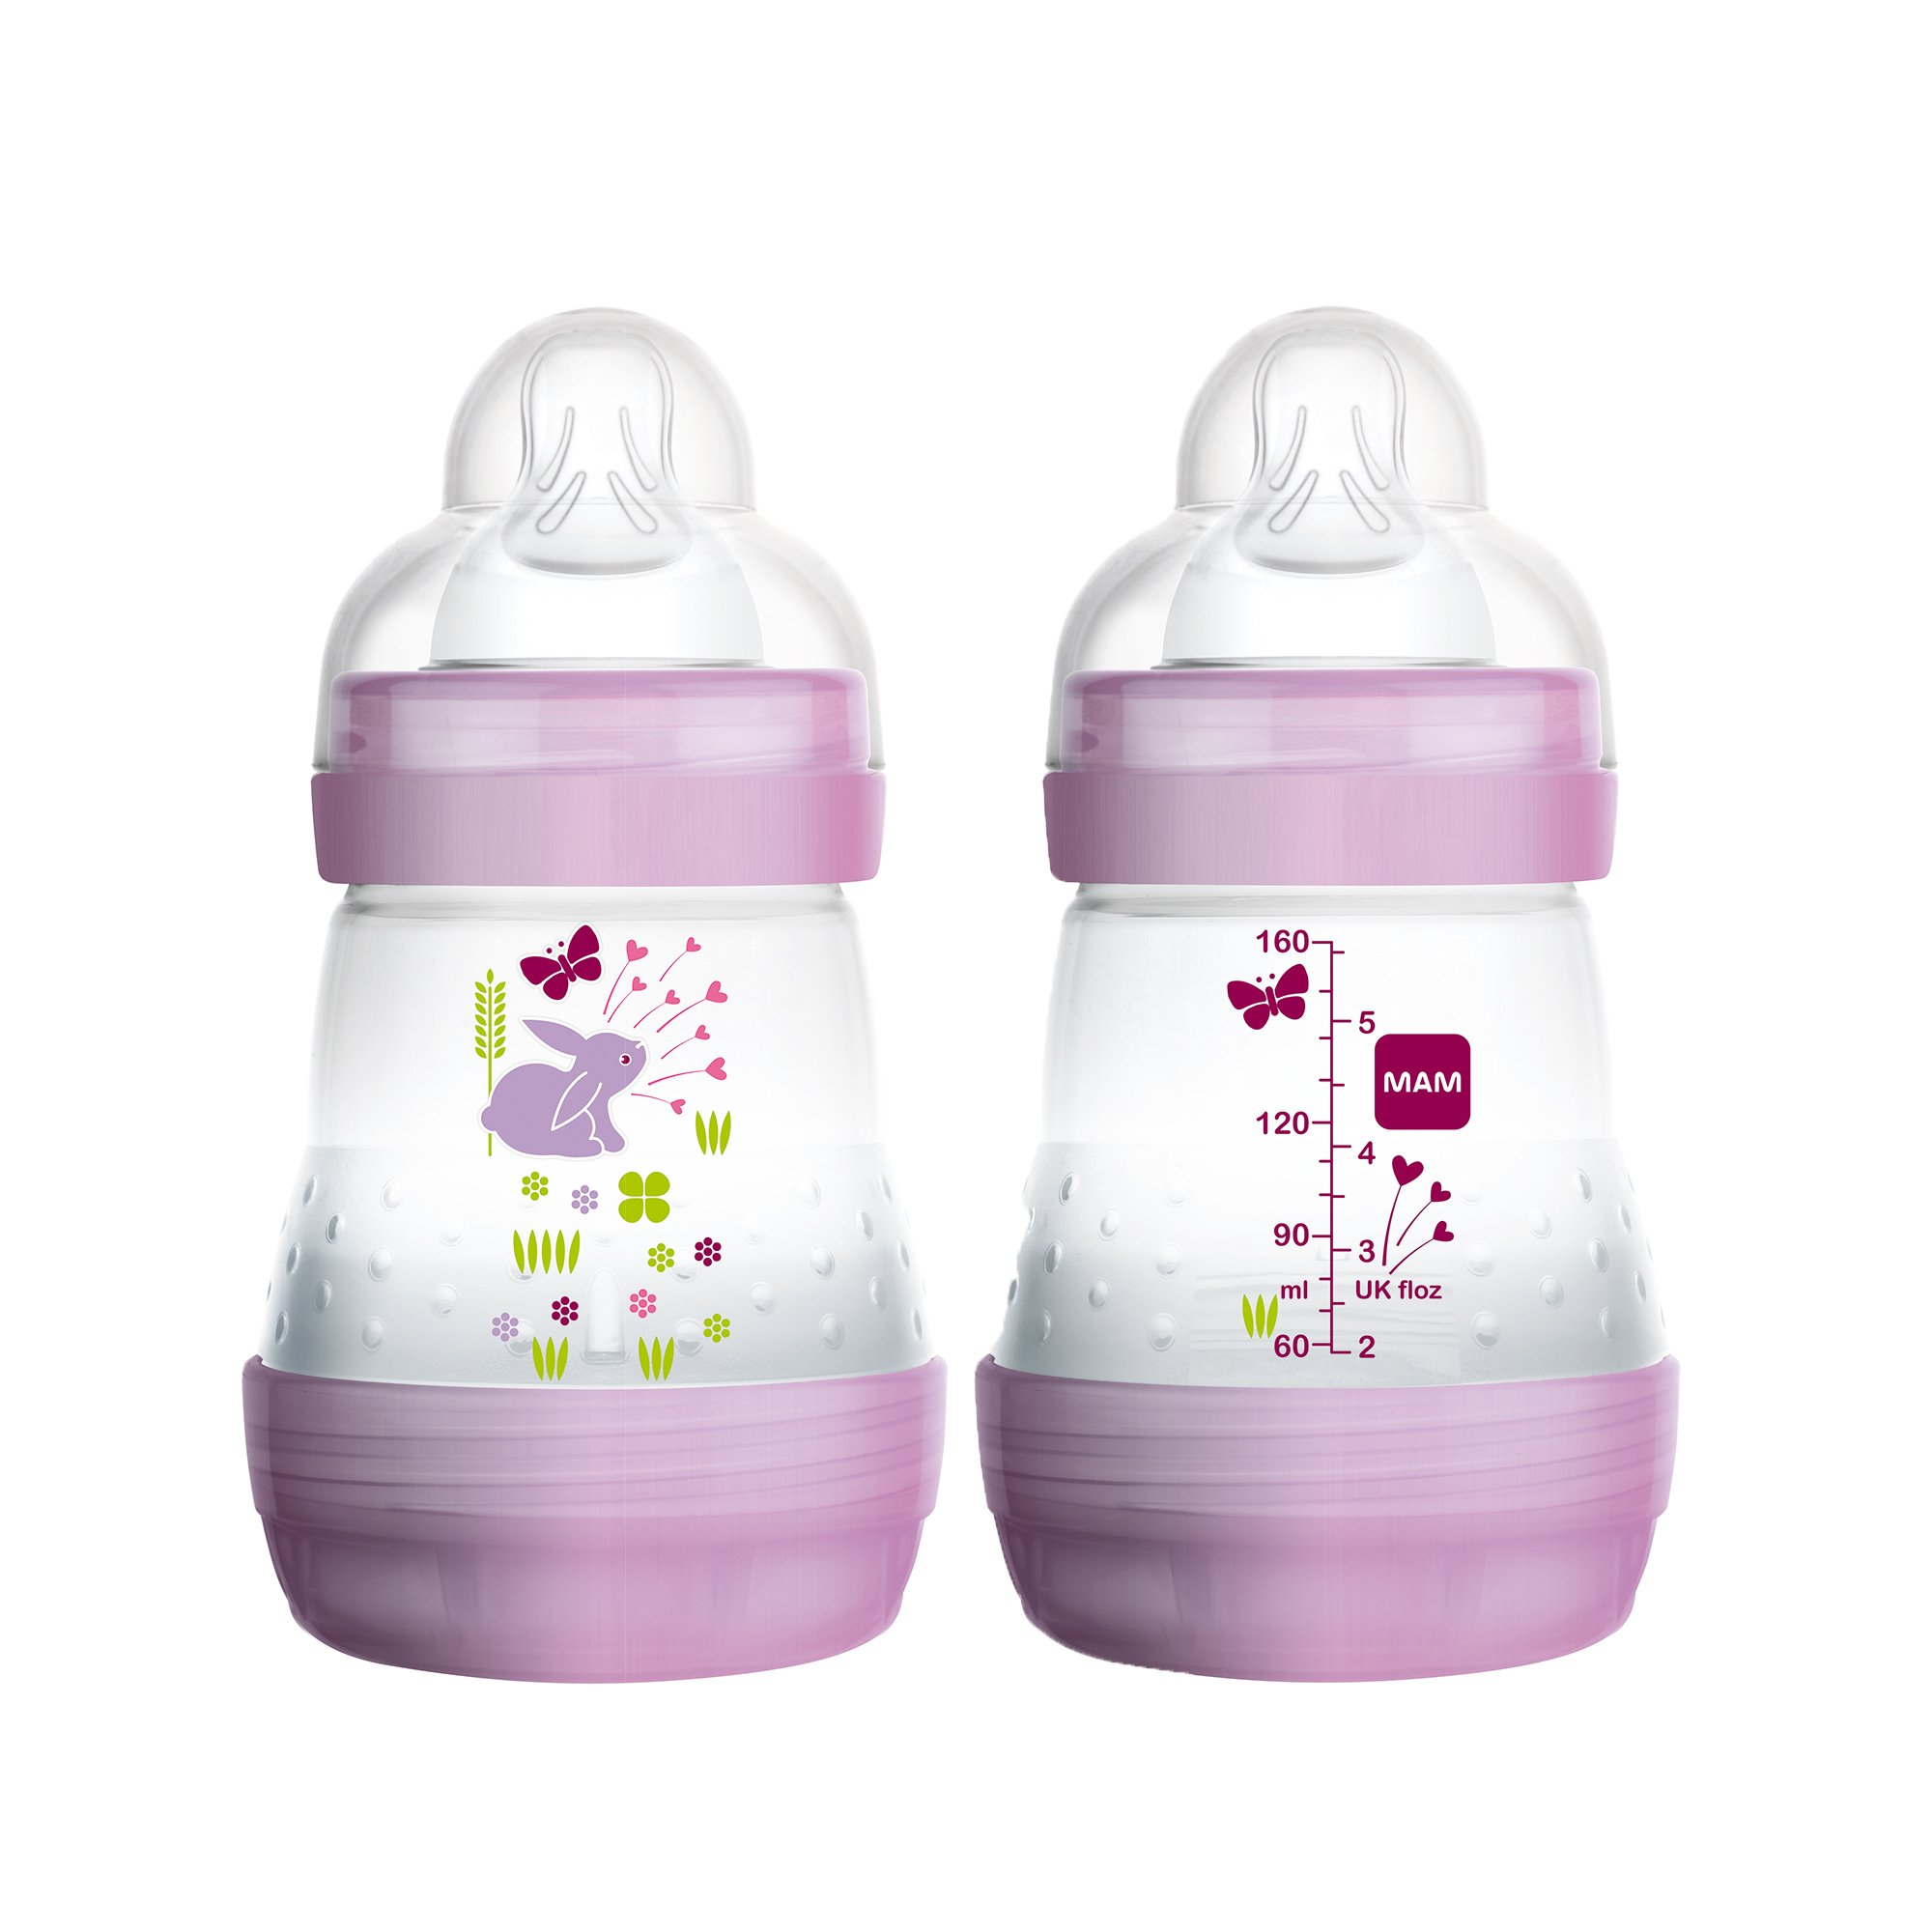 MAM Baby Bottles for Breastfed Babies, MAM Baby Bottles Anti Colic, Girl, 5 Ounces, 2-Count by MAM